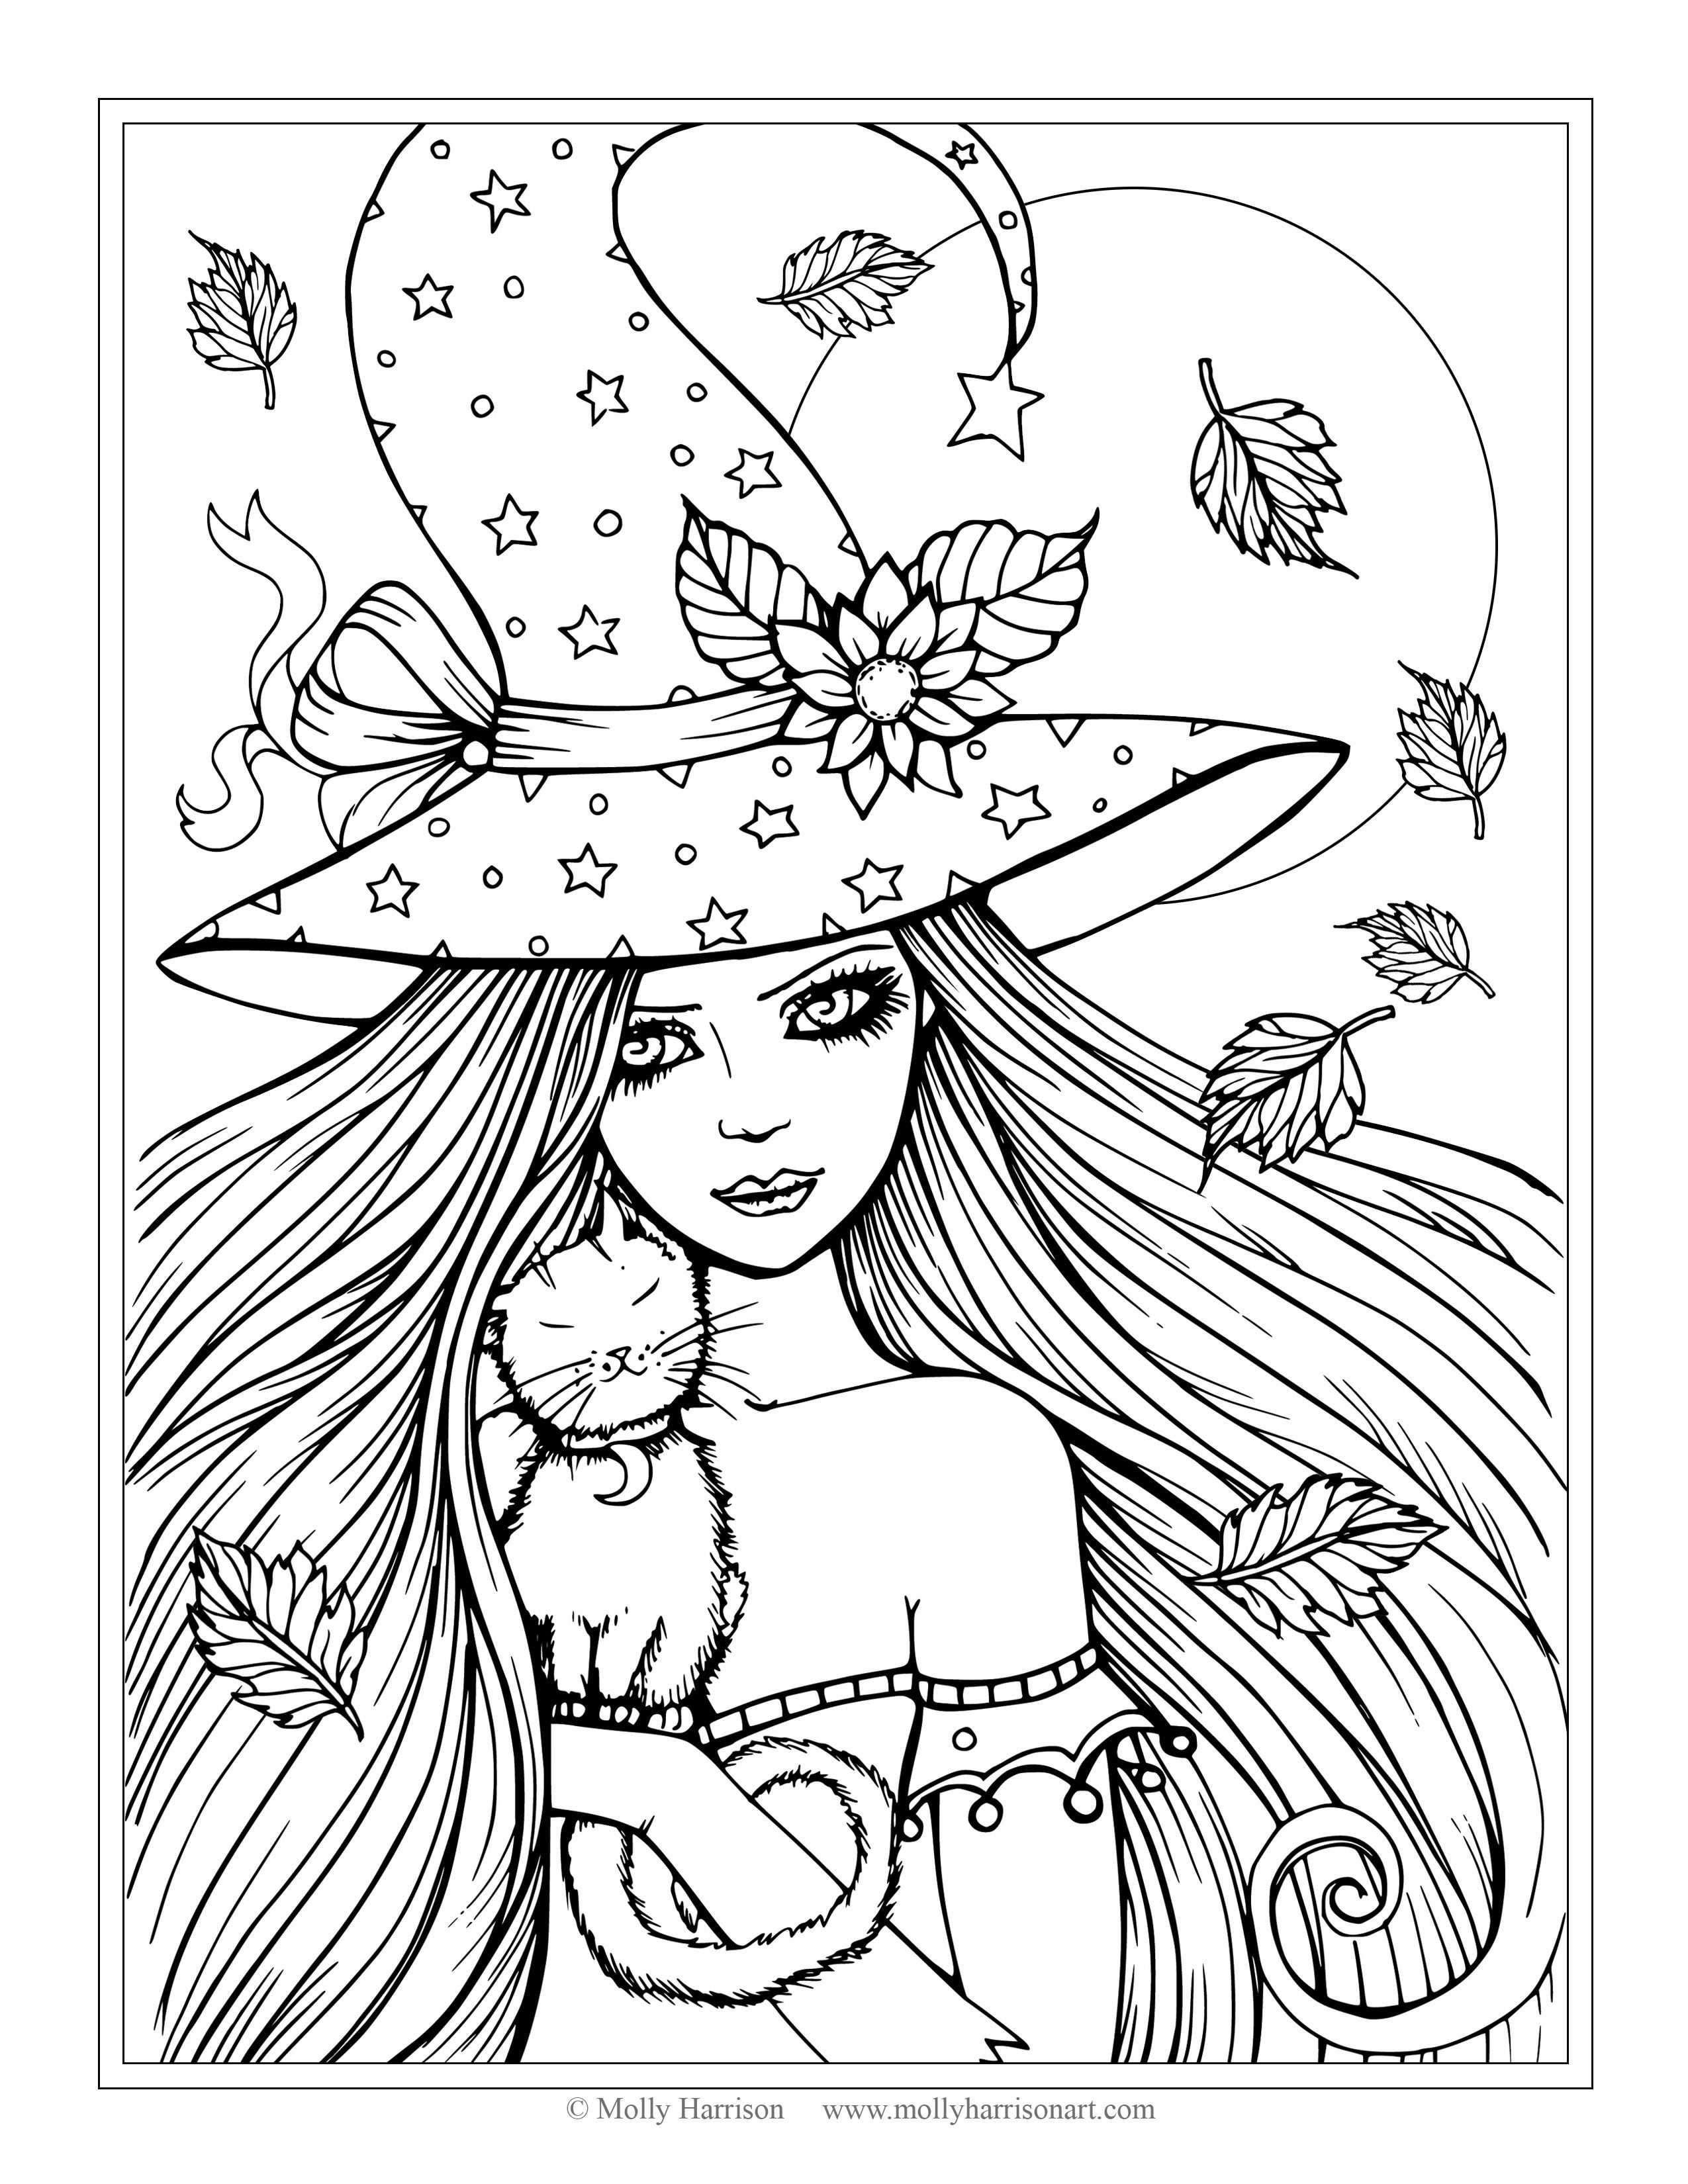 Princess Queen Coloring Pages Through The Thousands Of Photographs Online R Witch Coloring Pages Halloween Coloring Pages Printable Halloween Coloring Sheets